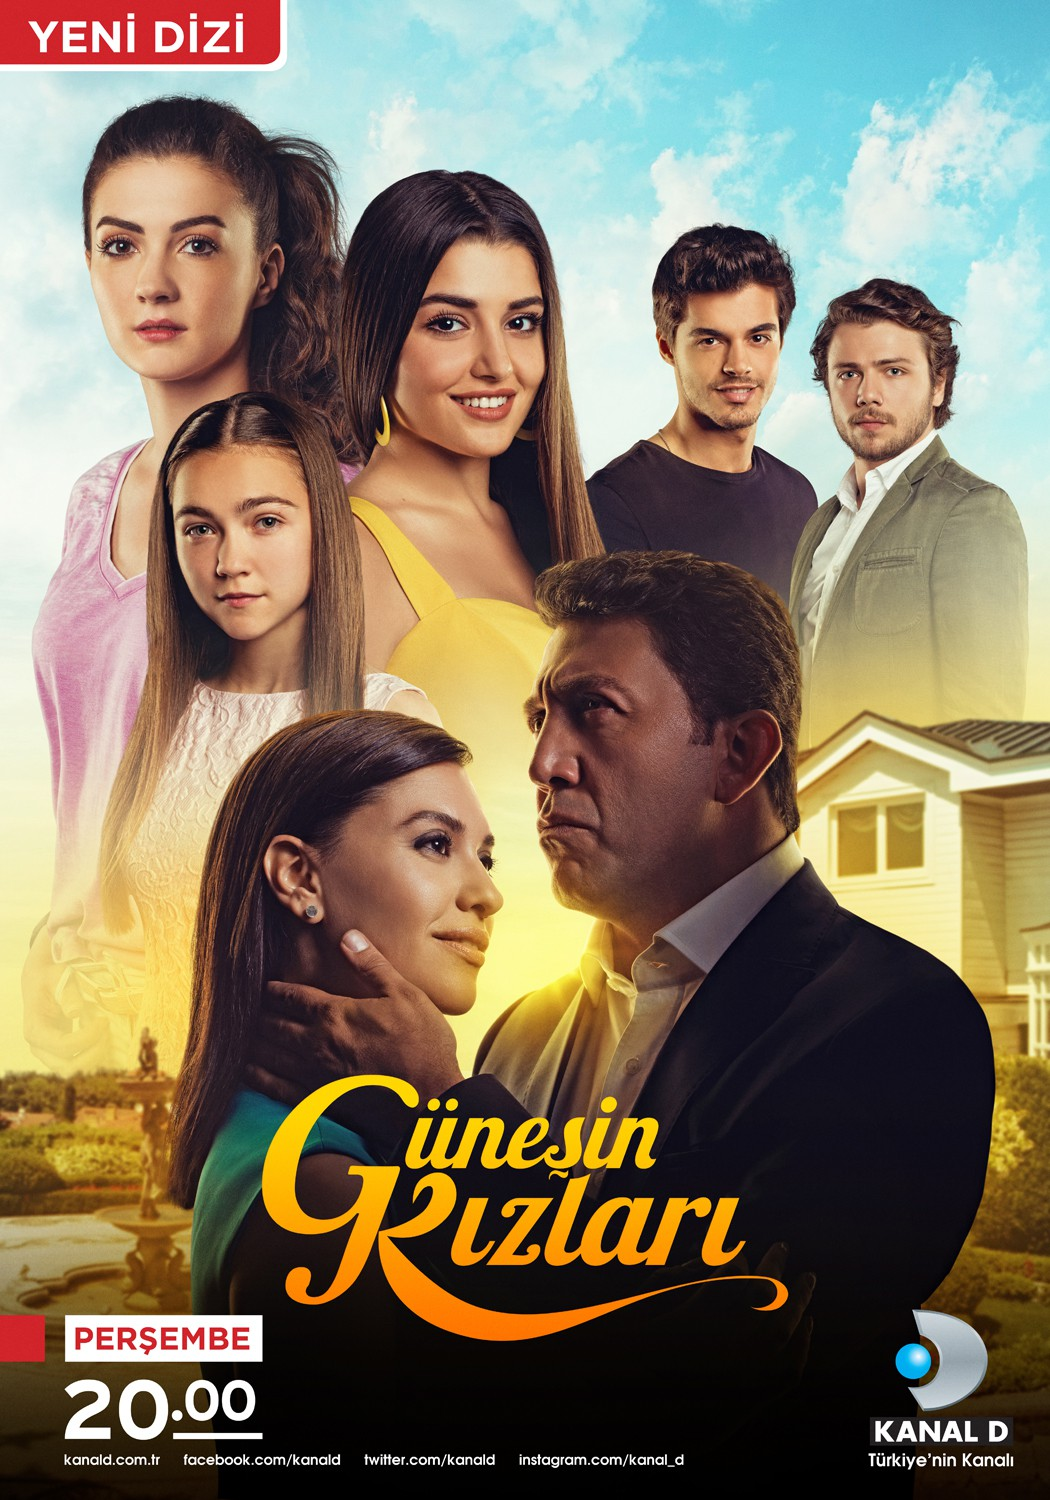 Günesin Kizlari (TV Series 2015–2016) - IMDb